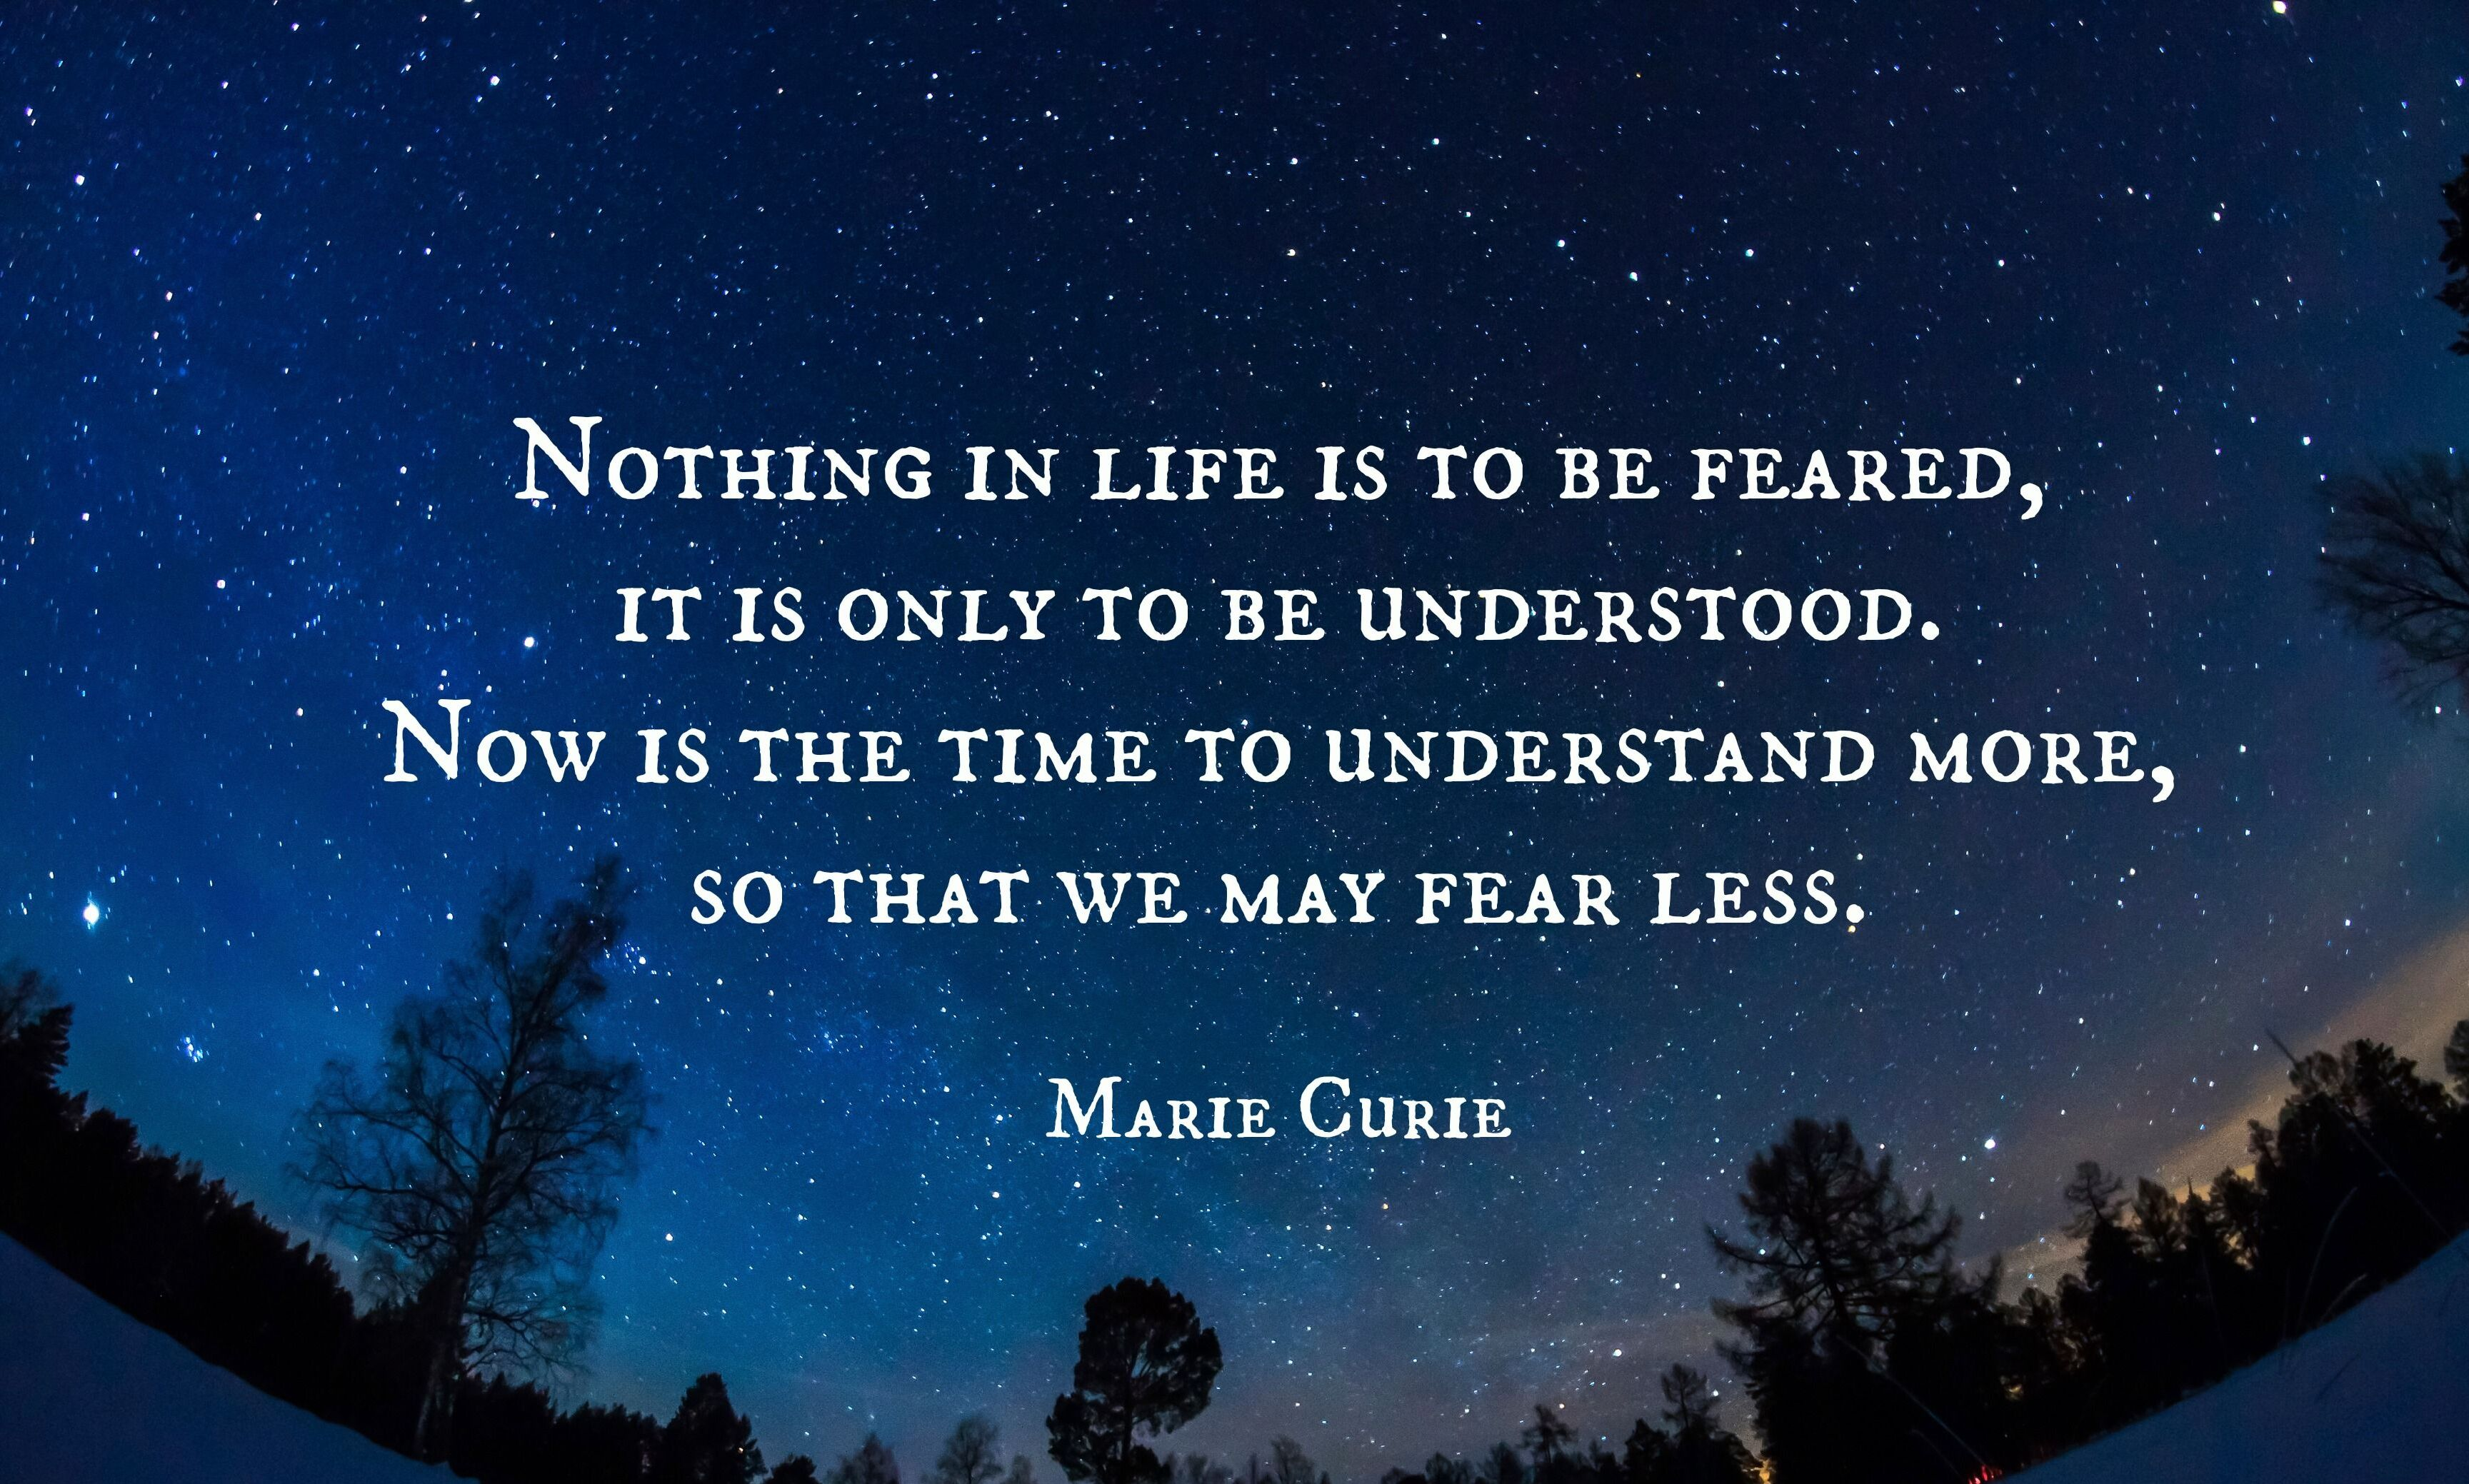 Nothing in life is to be feared, it is only to be understood. Now is the time to understand more, so that we may fear less~ Marie Curie [3464×2309]